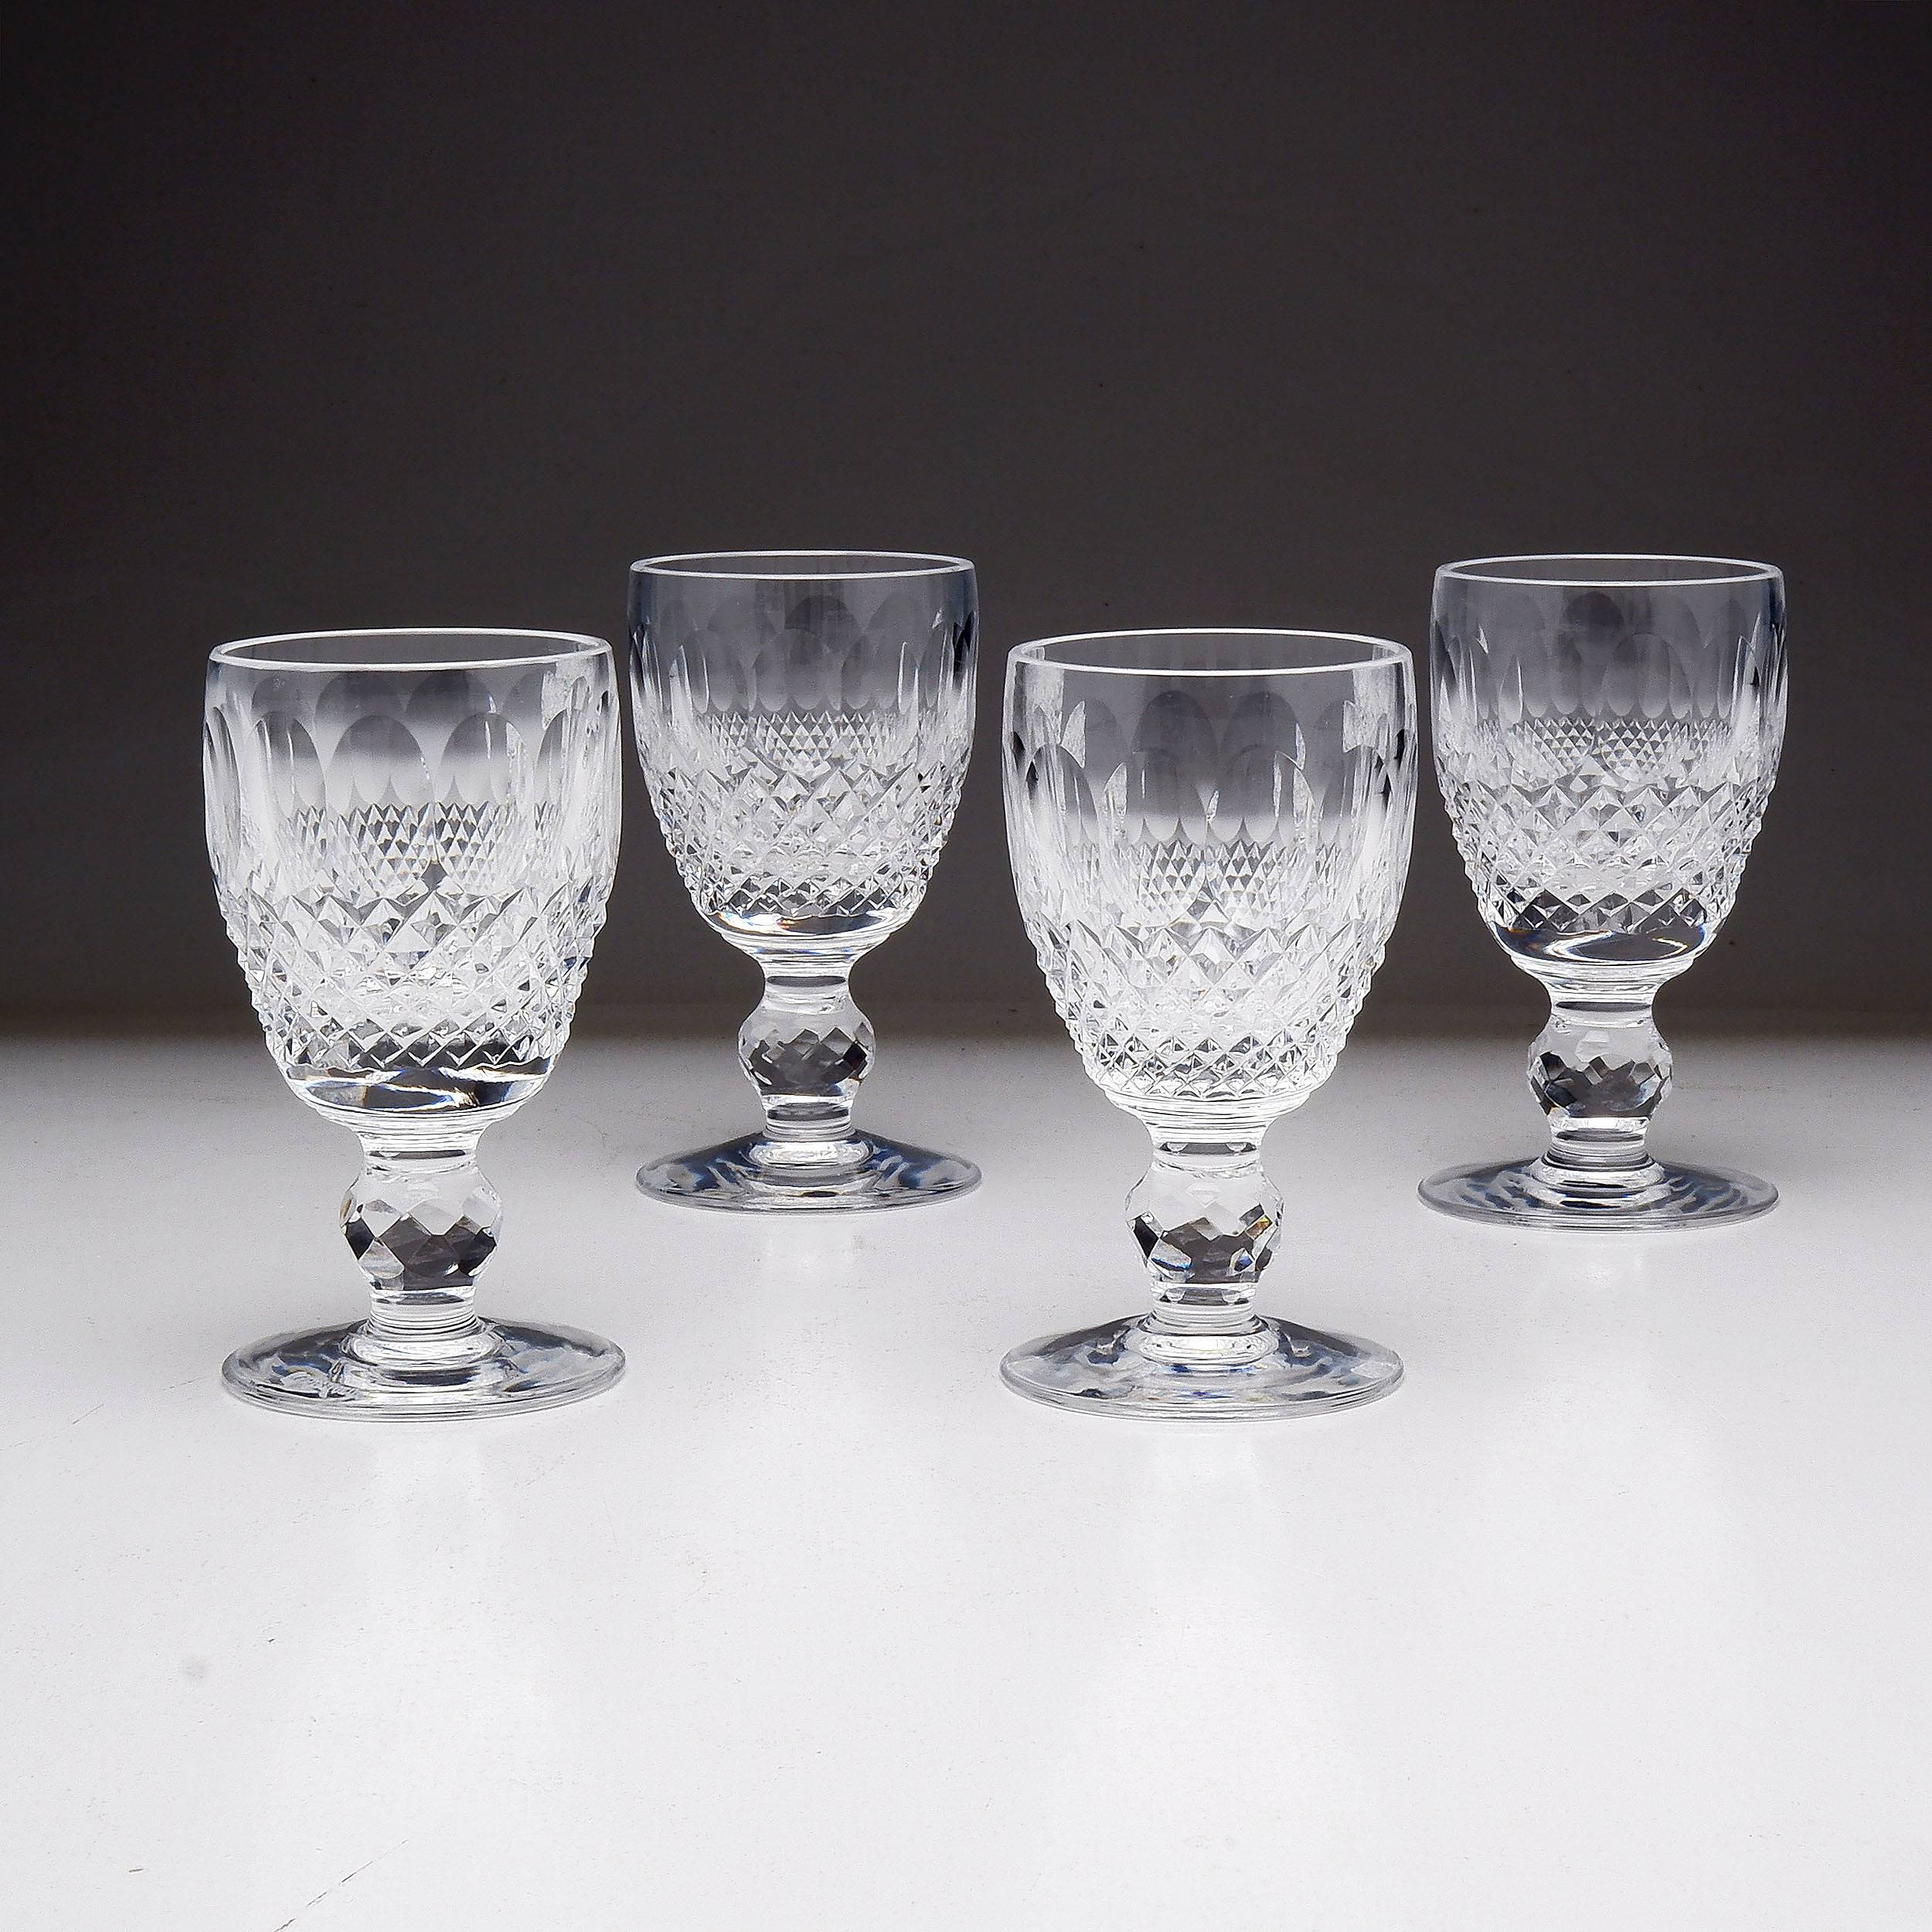 'Four Waterford Crystal Port Glasses'